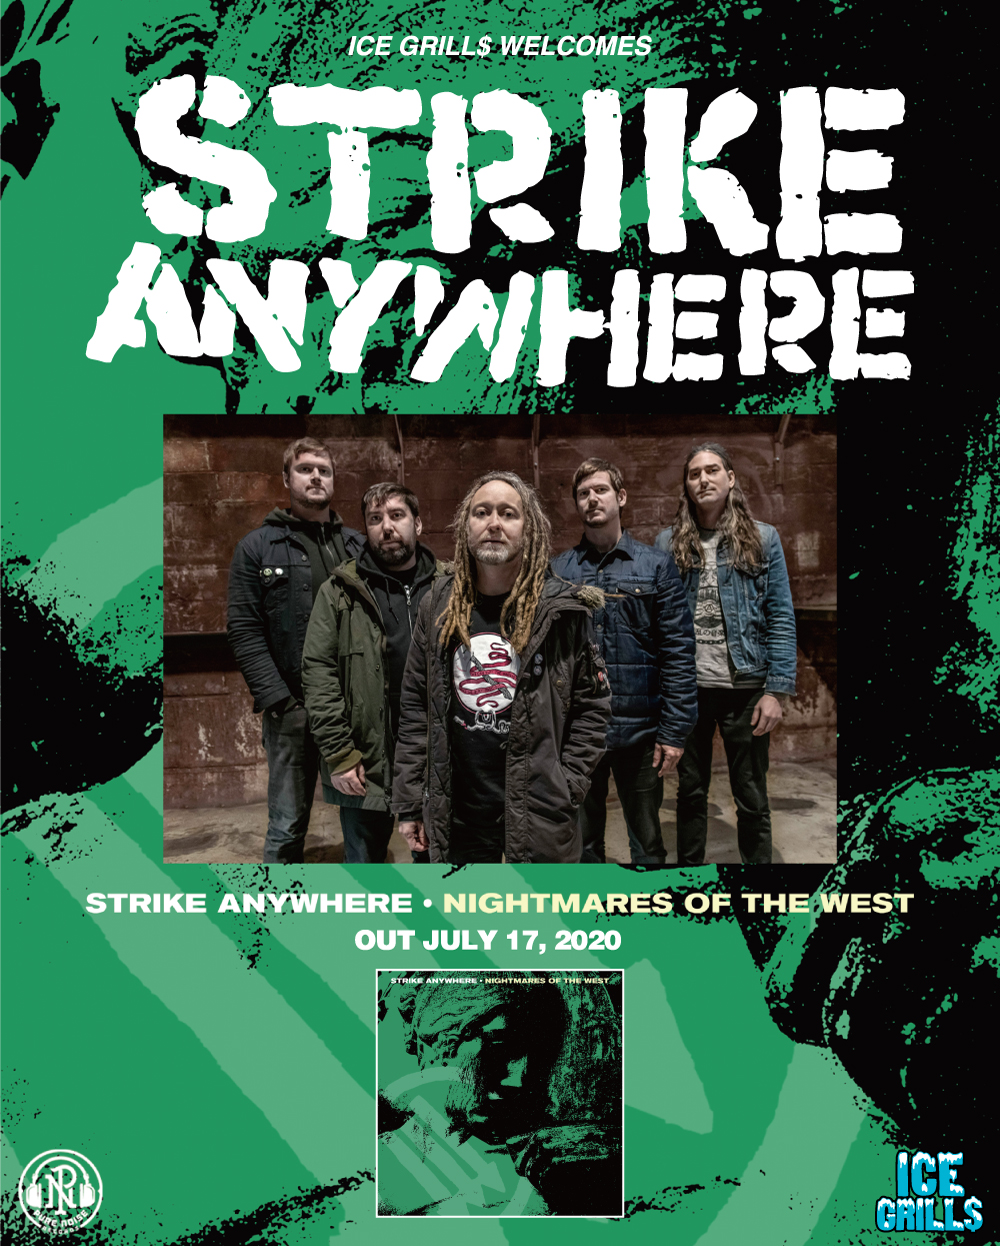 Strike Anywhere – New EP 'Nightmares of the West' out July 17, 2020